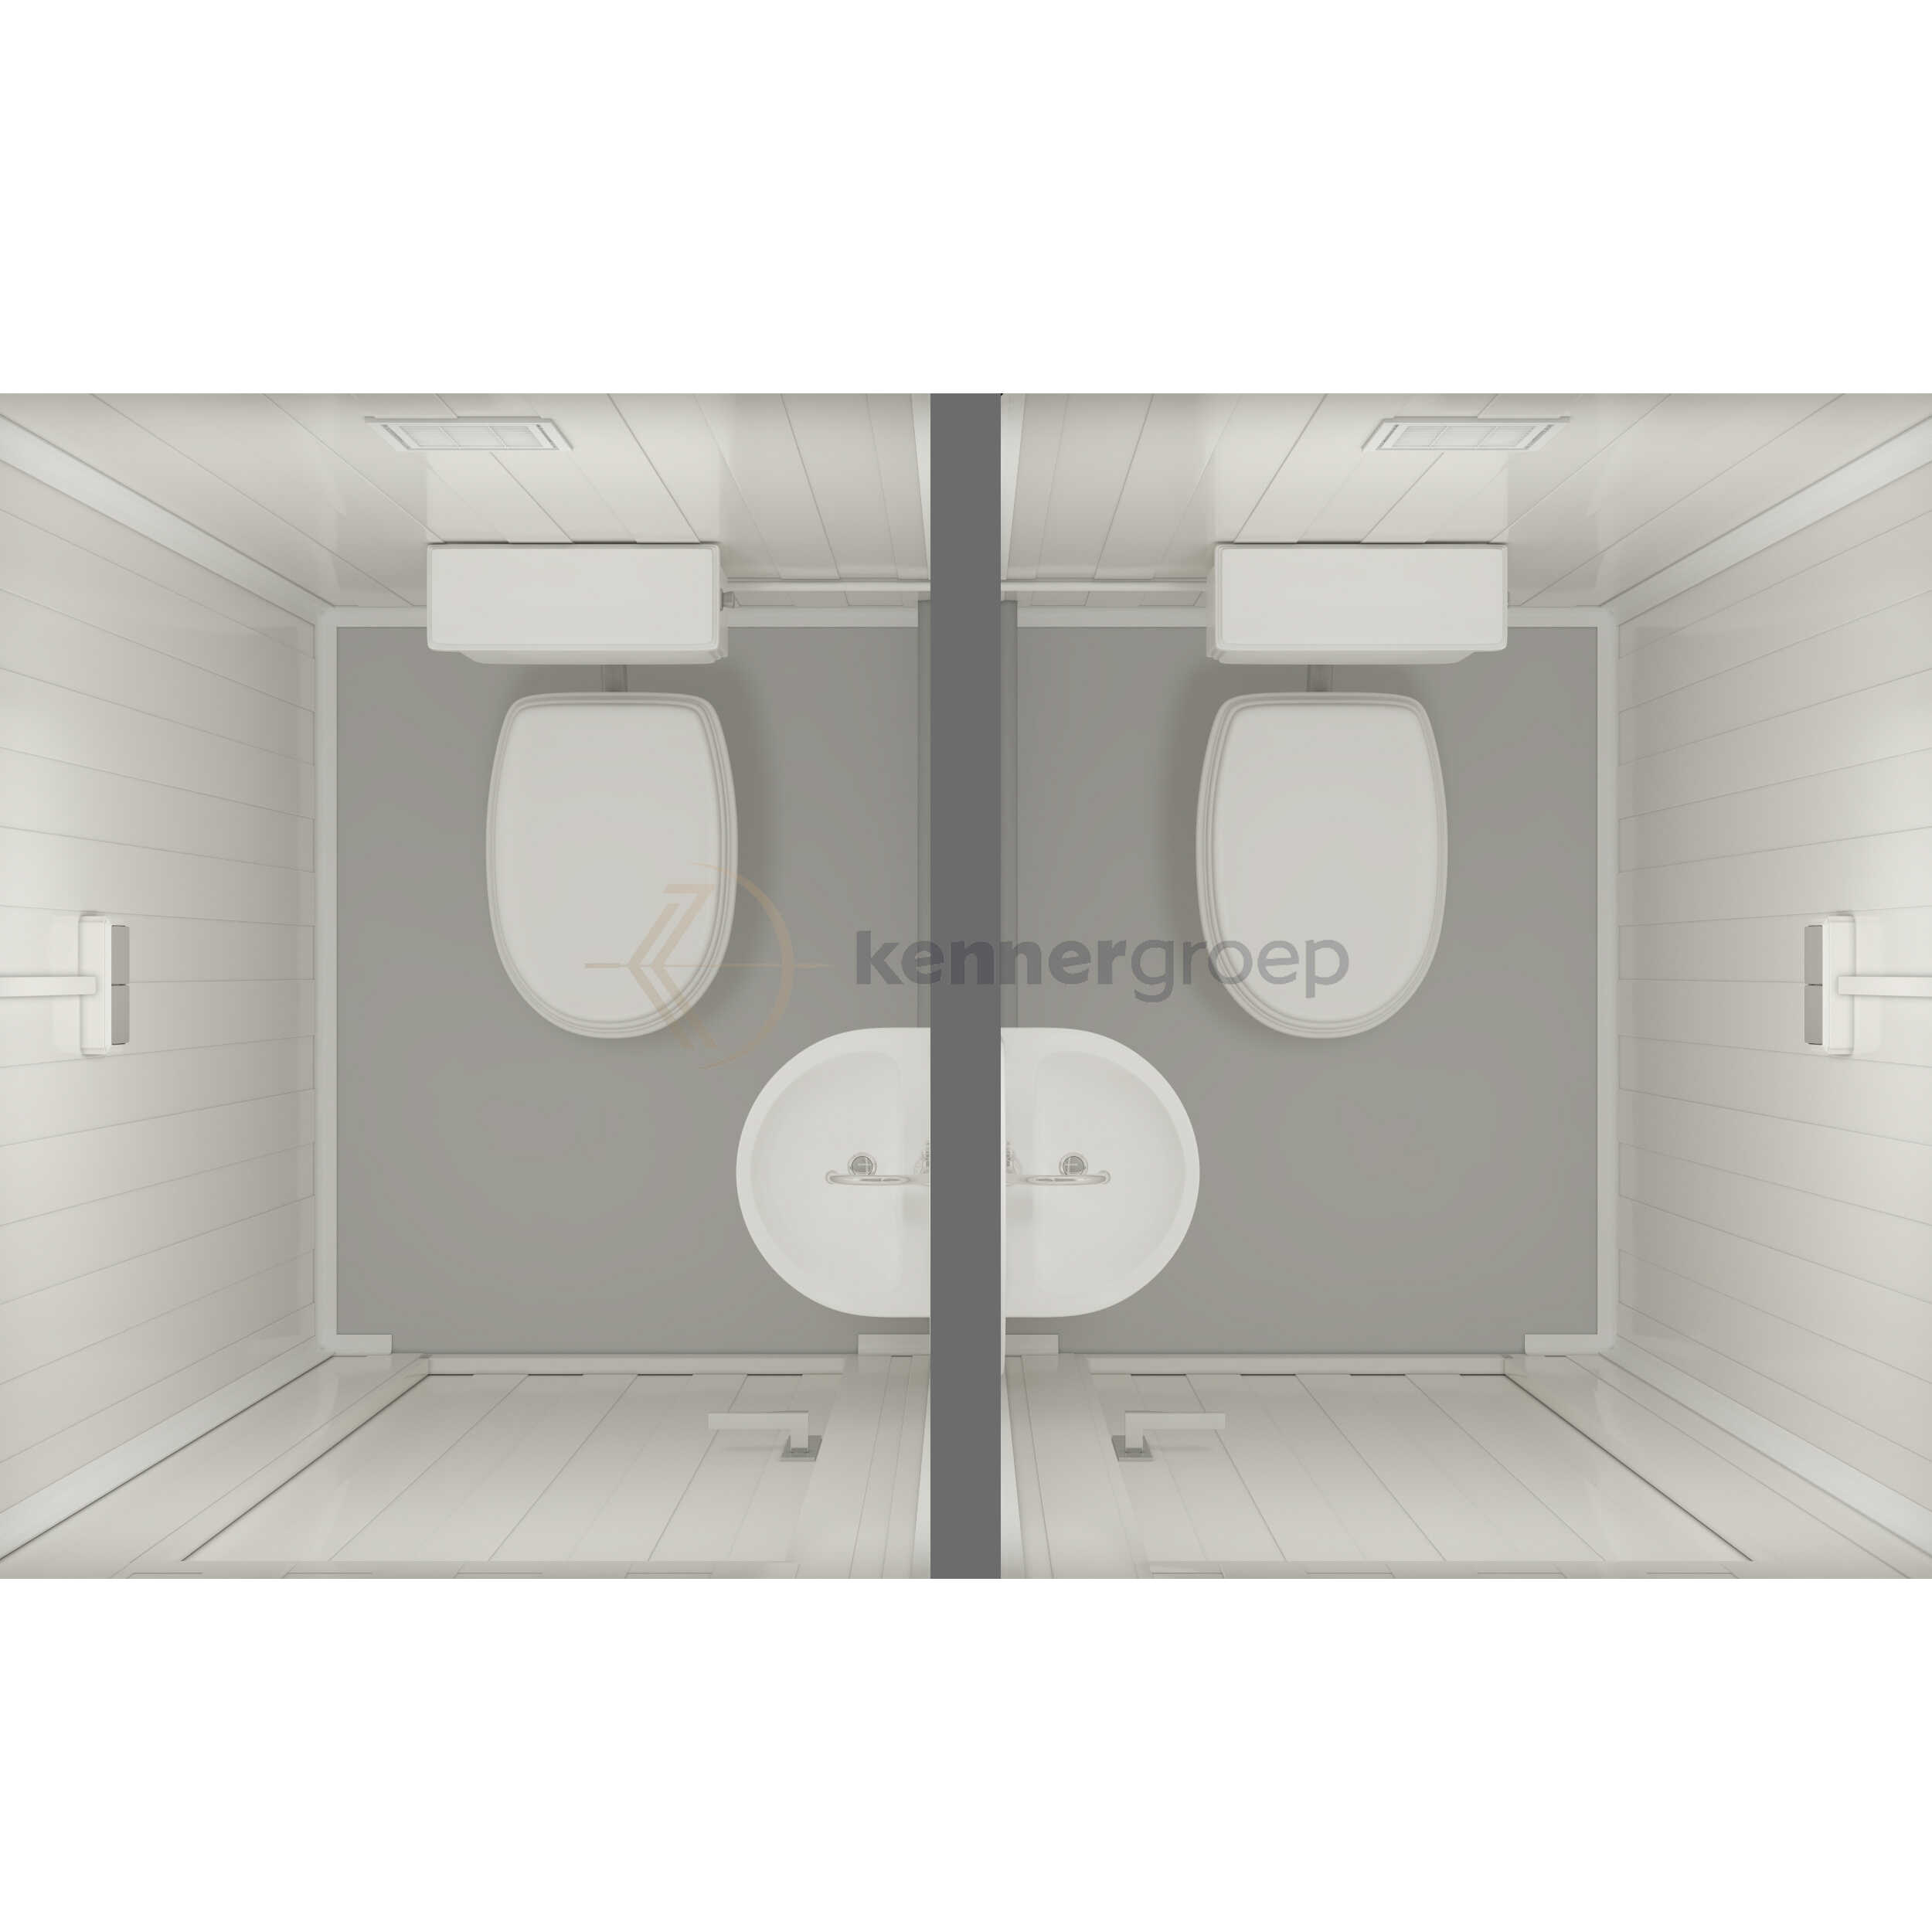 Metalen Unit Dubbel, 2x Toilet + Wastafel KC-WC3: €2850,-